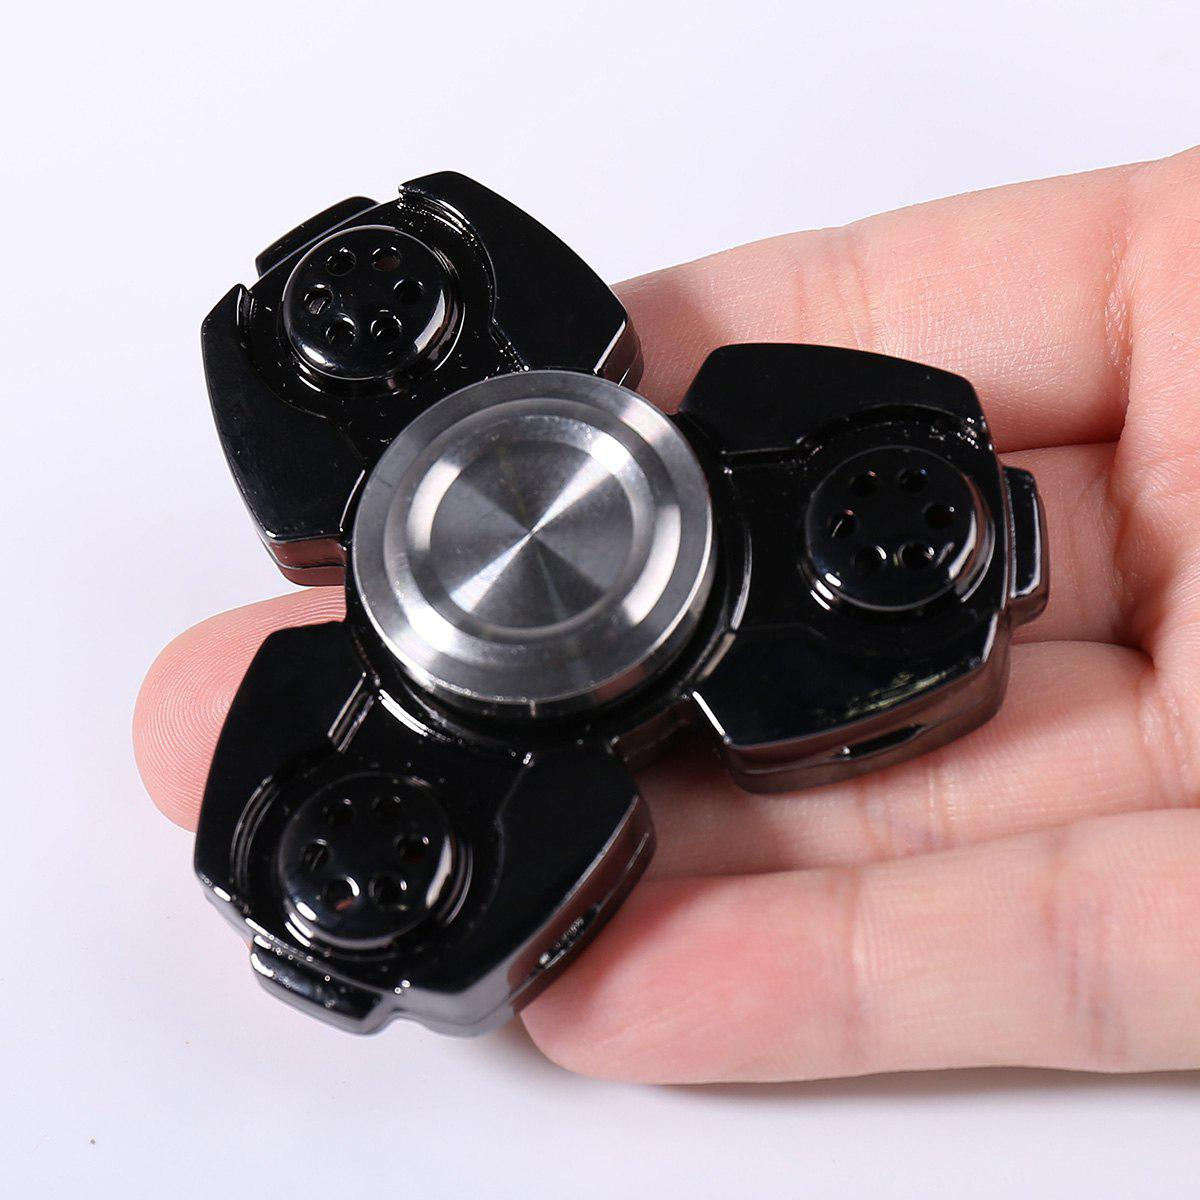 Metal Stress Relief Spinner Toy Hand Finger Gyro - Noir 6.5*6.5CM